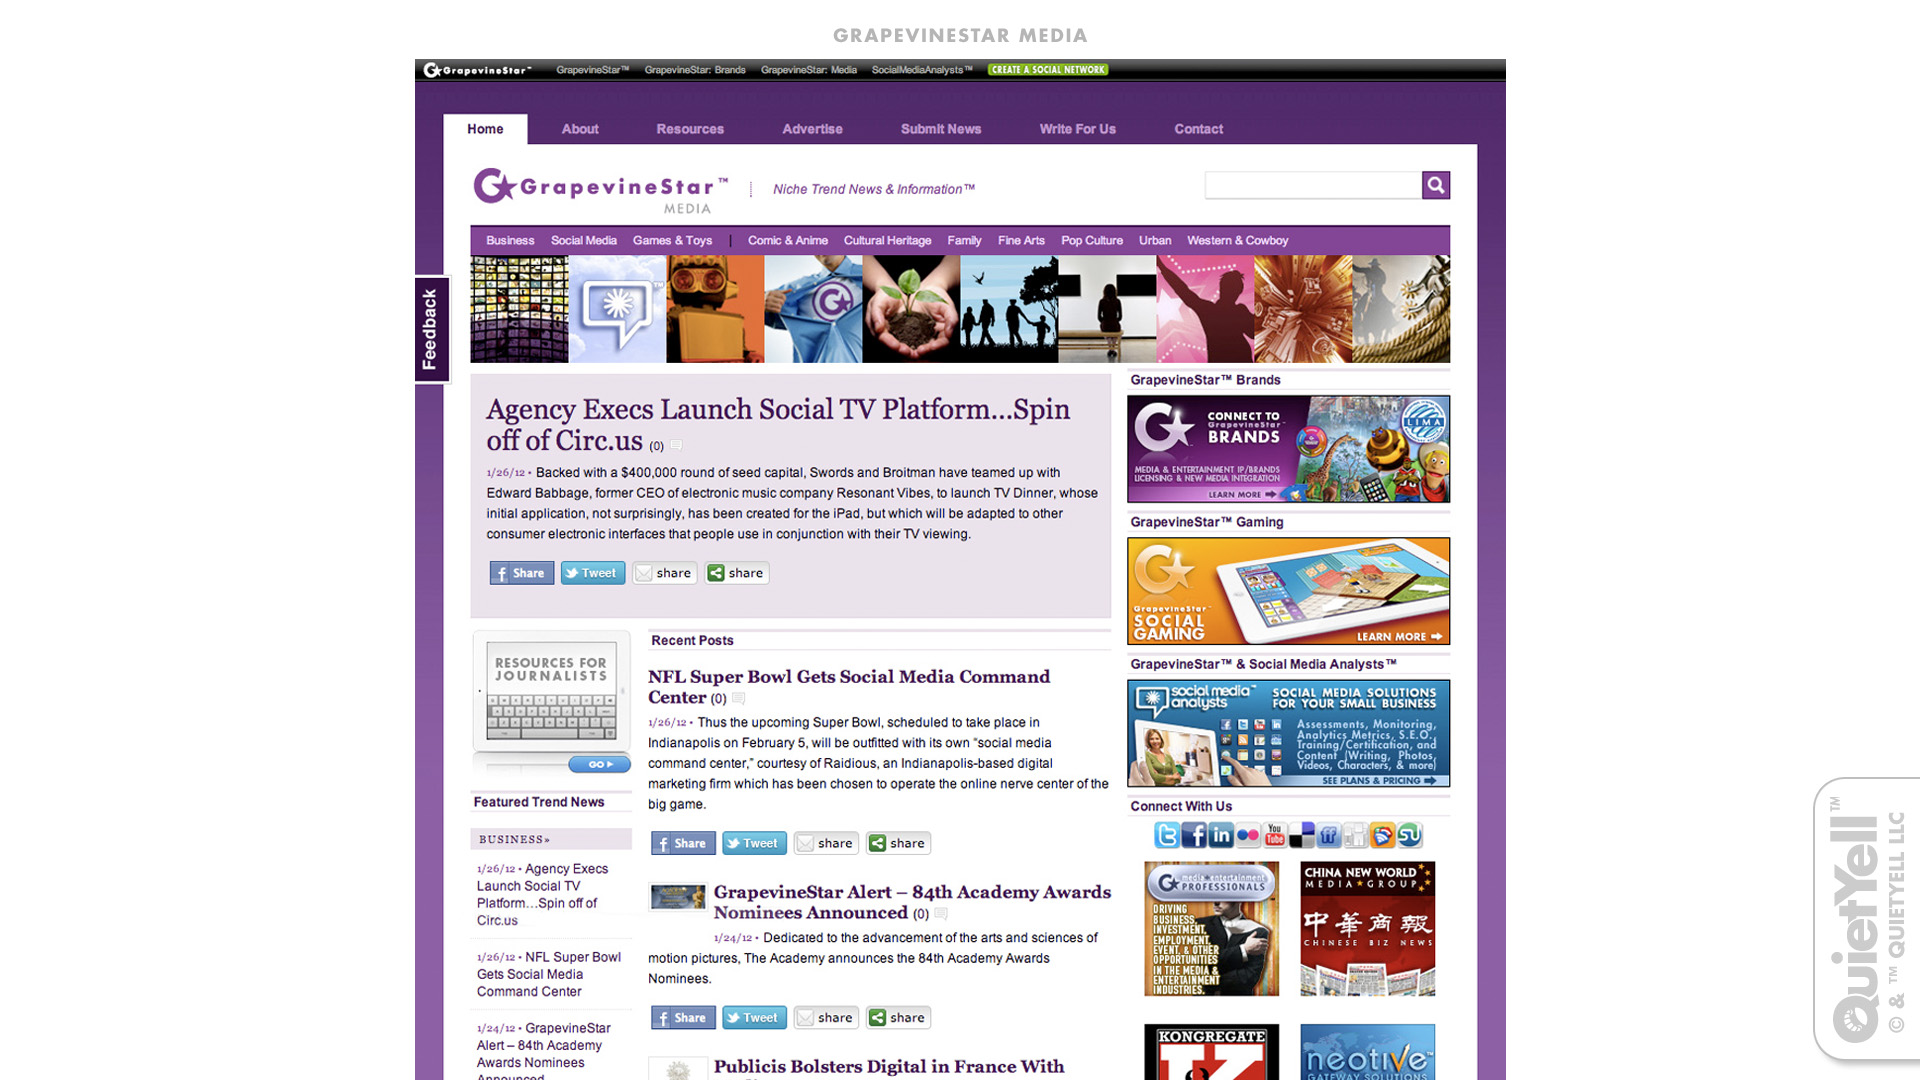 quietyell_interactive_details_grapevinestar_website_01